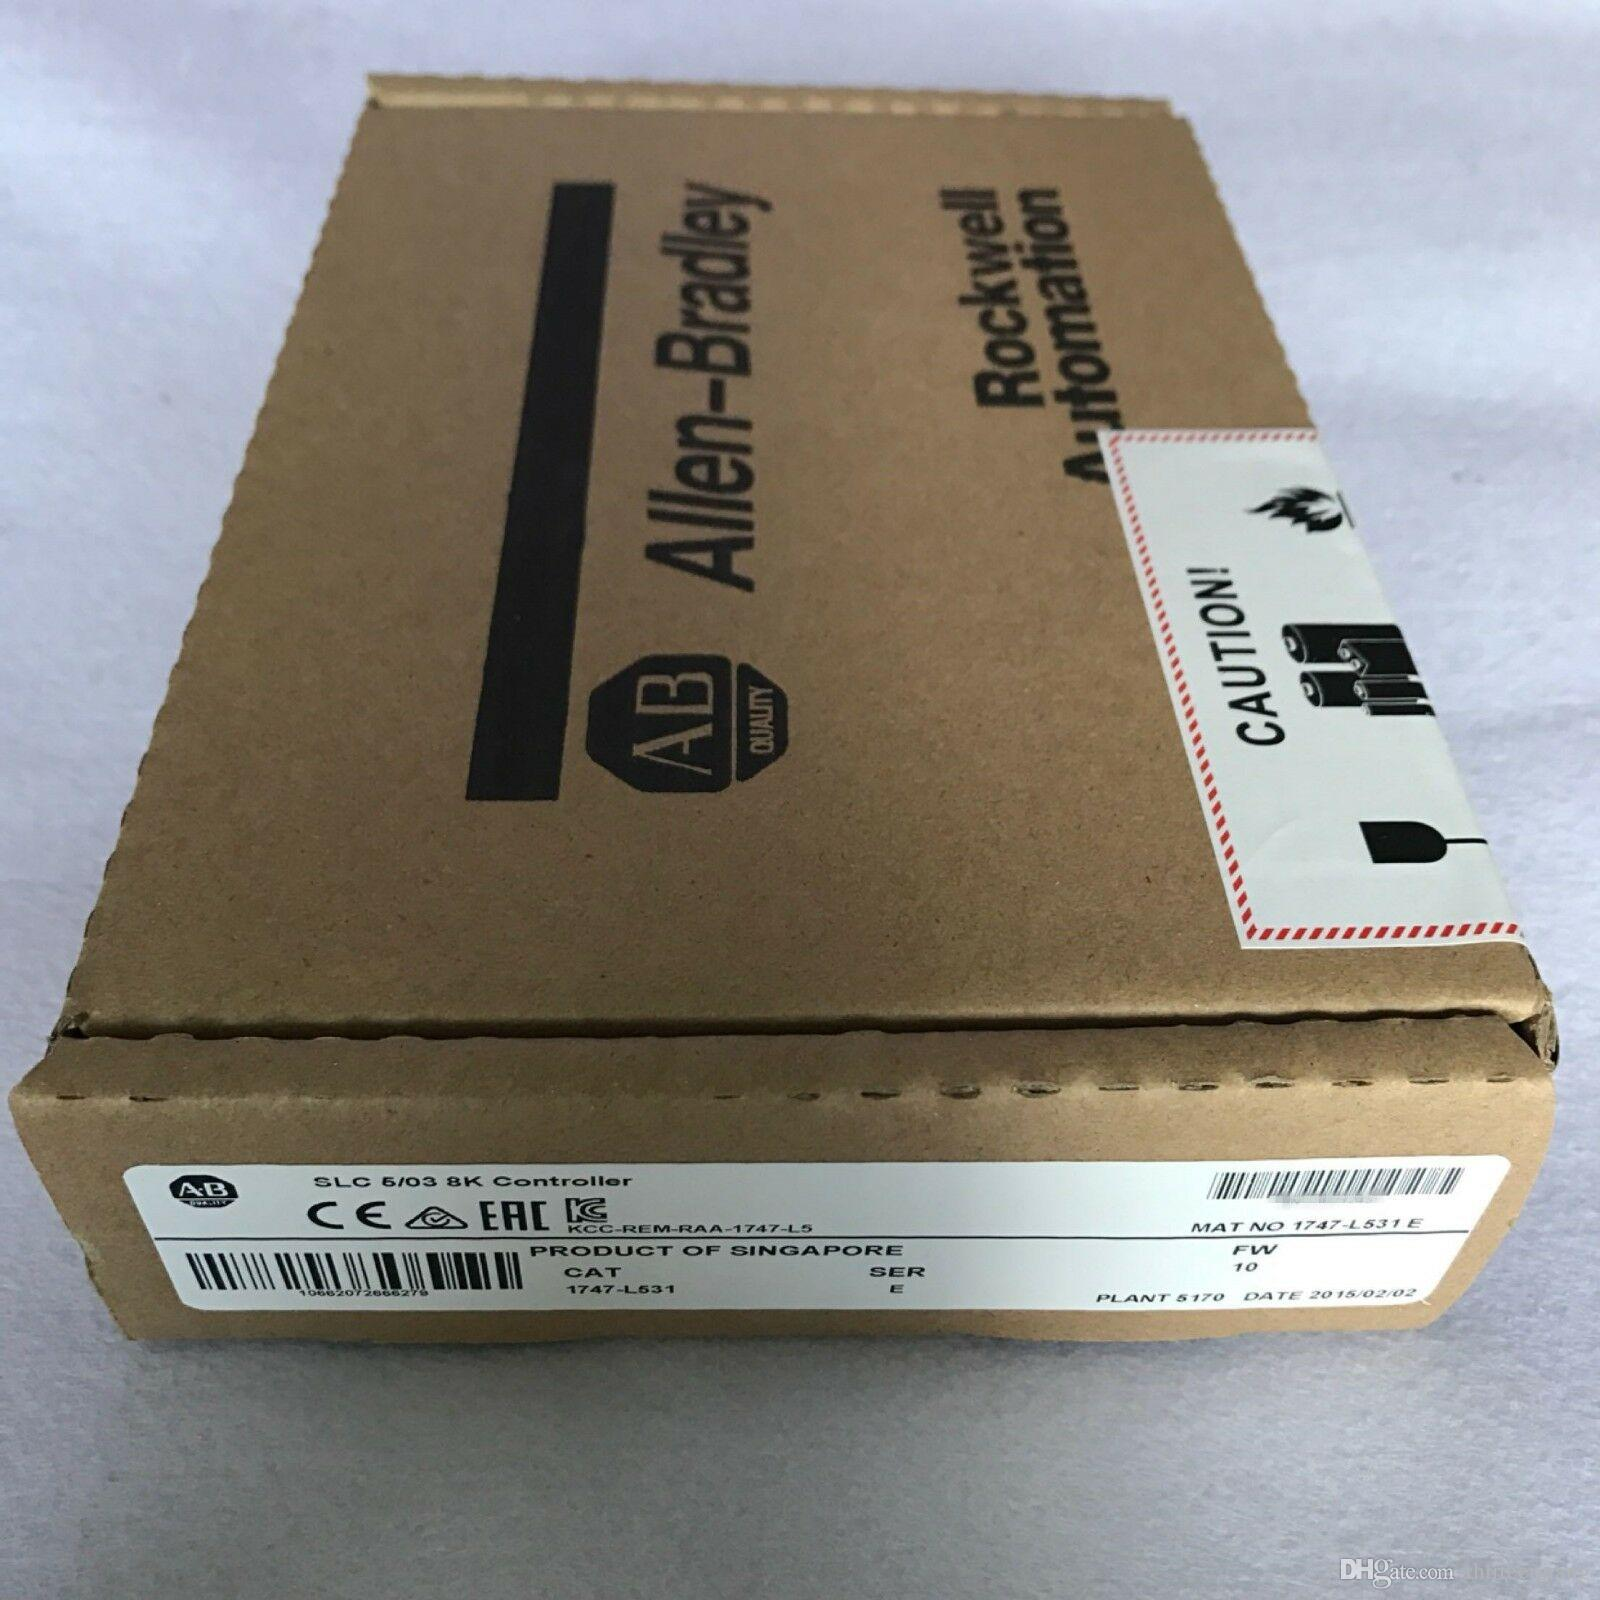 1 PC Original Allen-Bradley 1747-L531 Processor Unit Module New In Box/Used Test In Good Condition